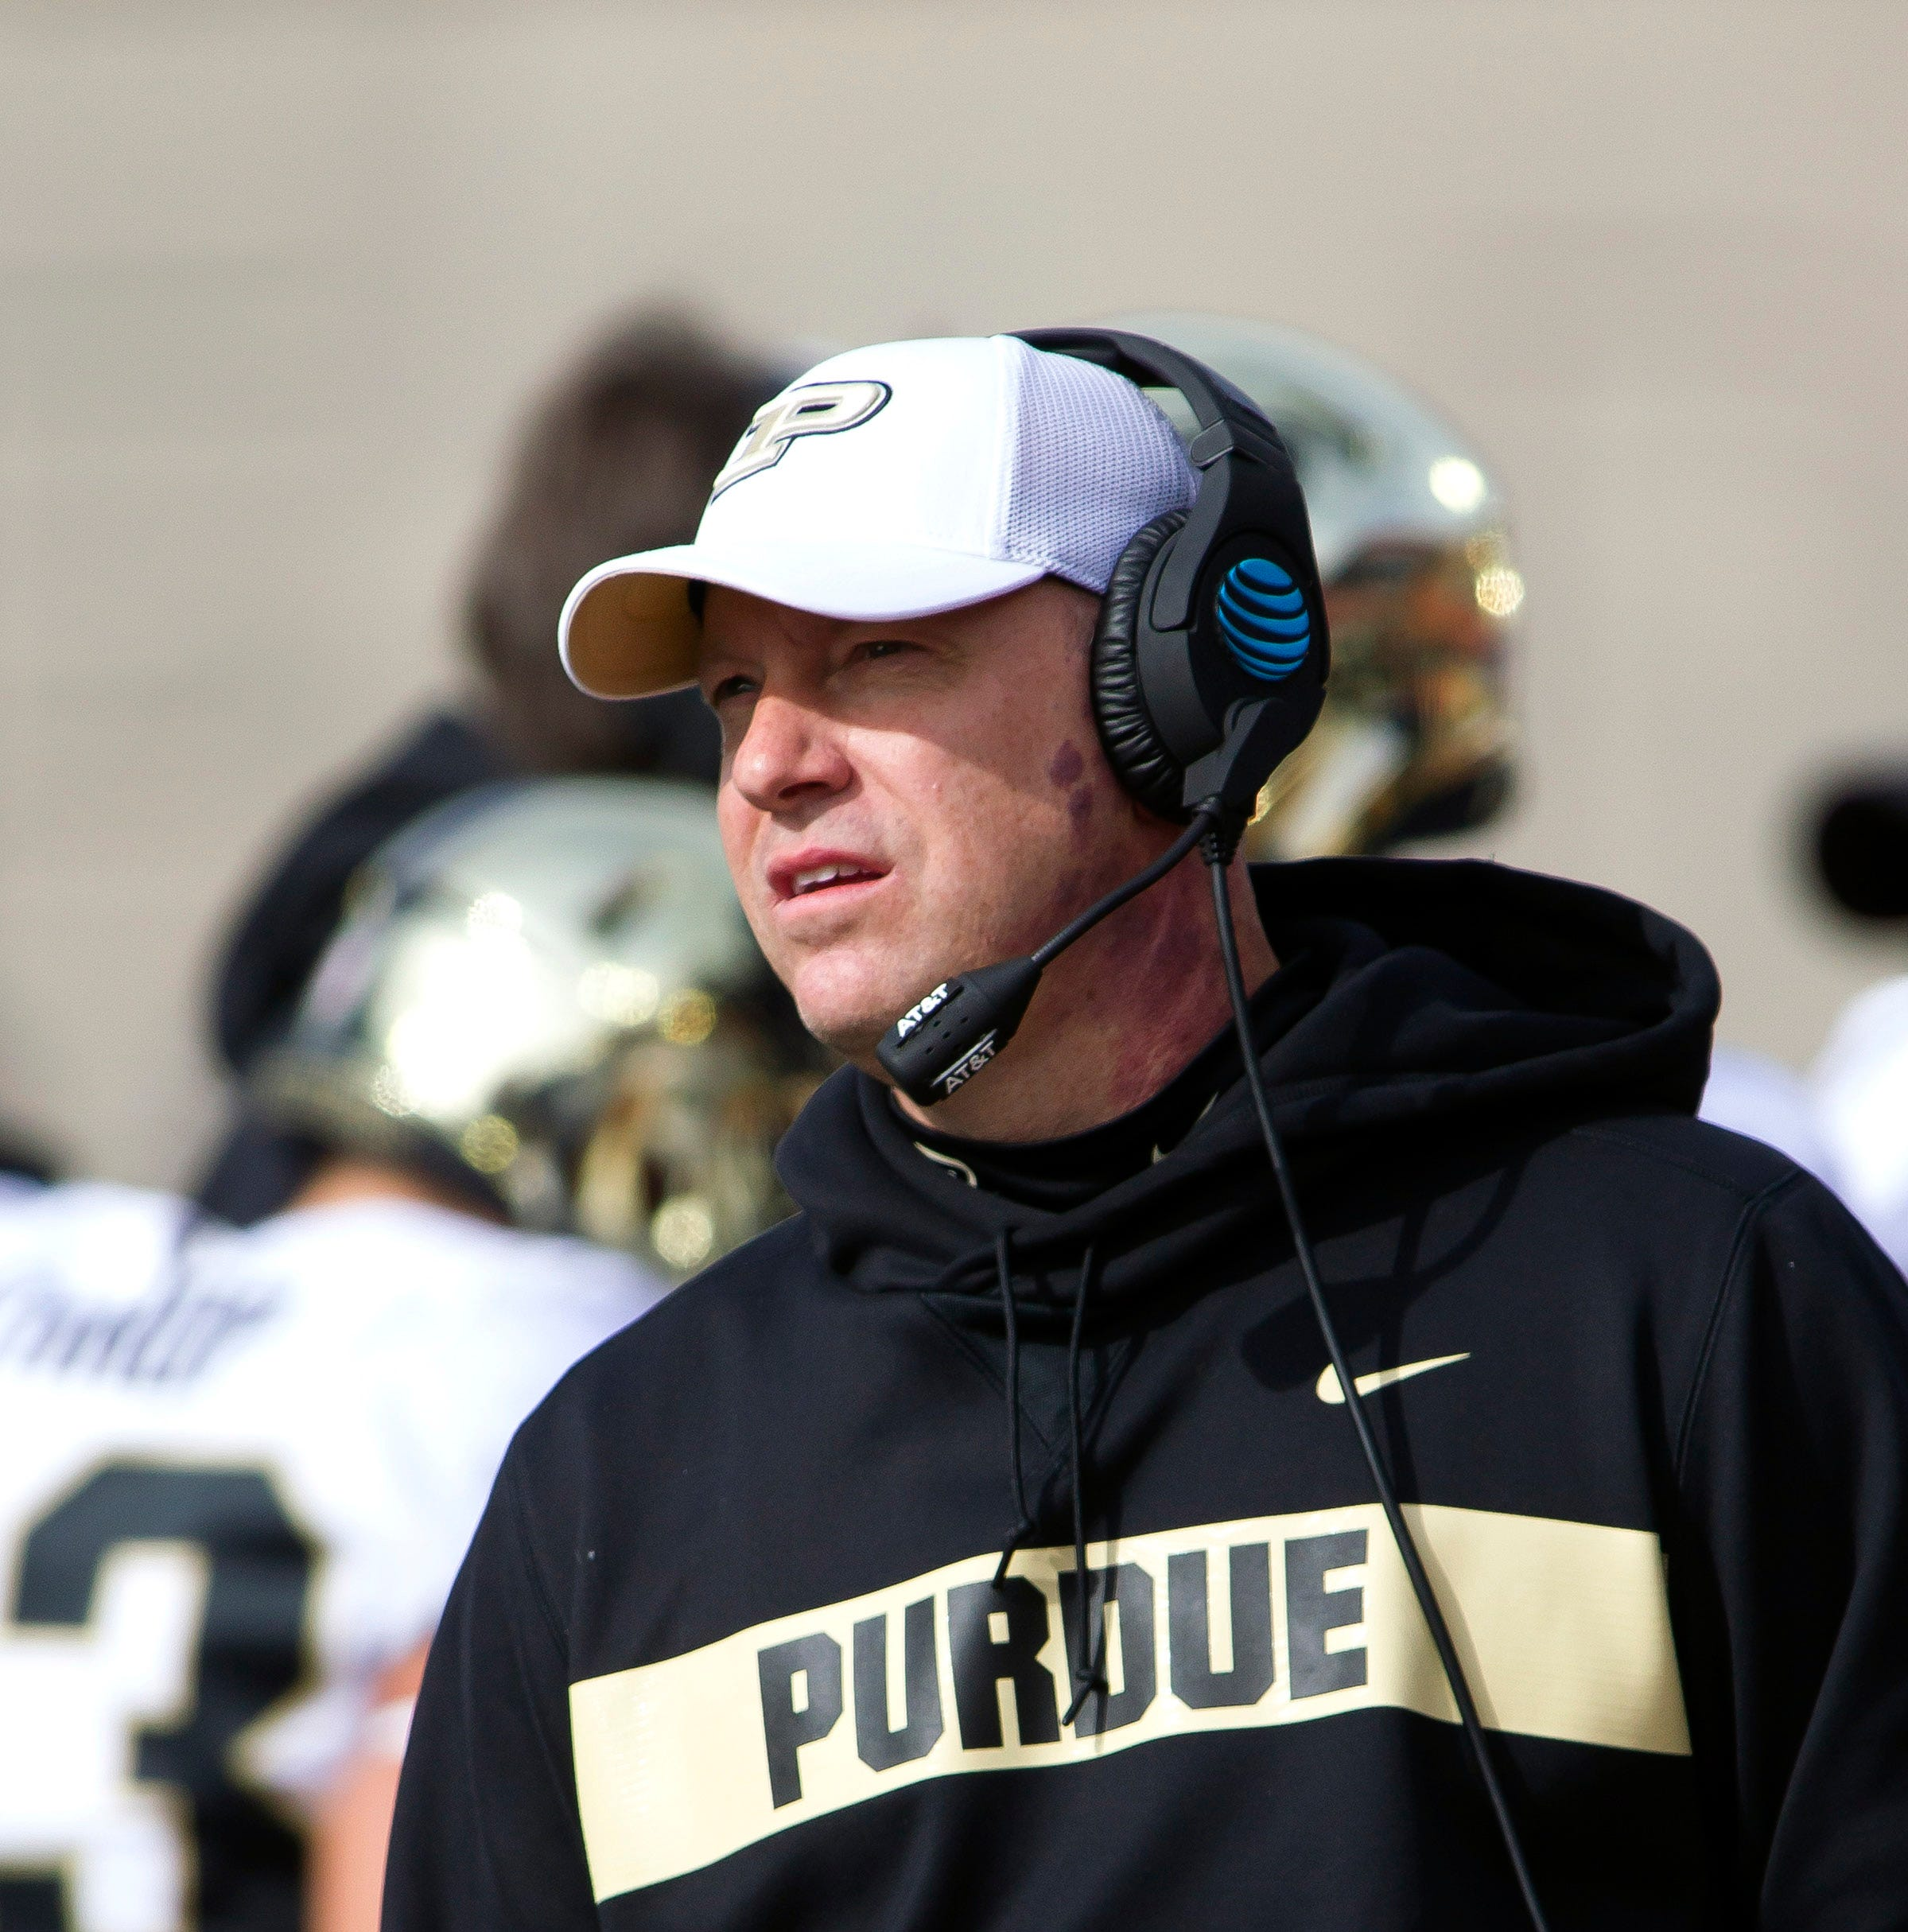 Purdue football coach Jeff Brohm on Louisville speculation: 'Completely false'